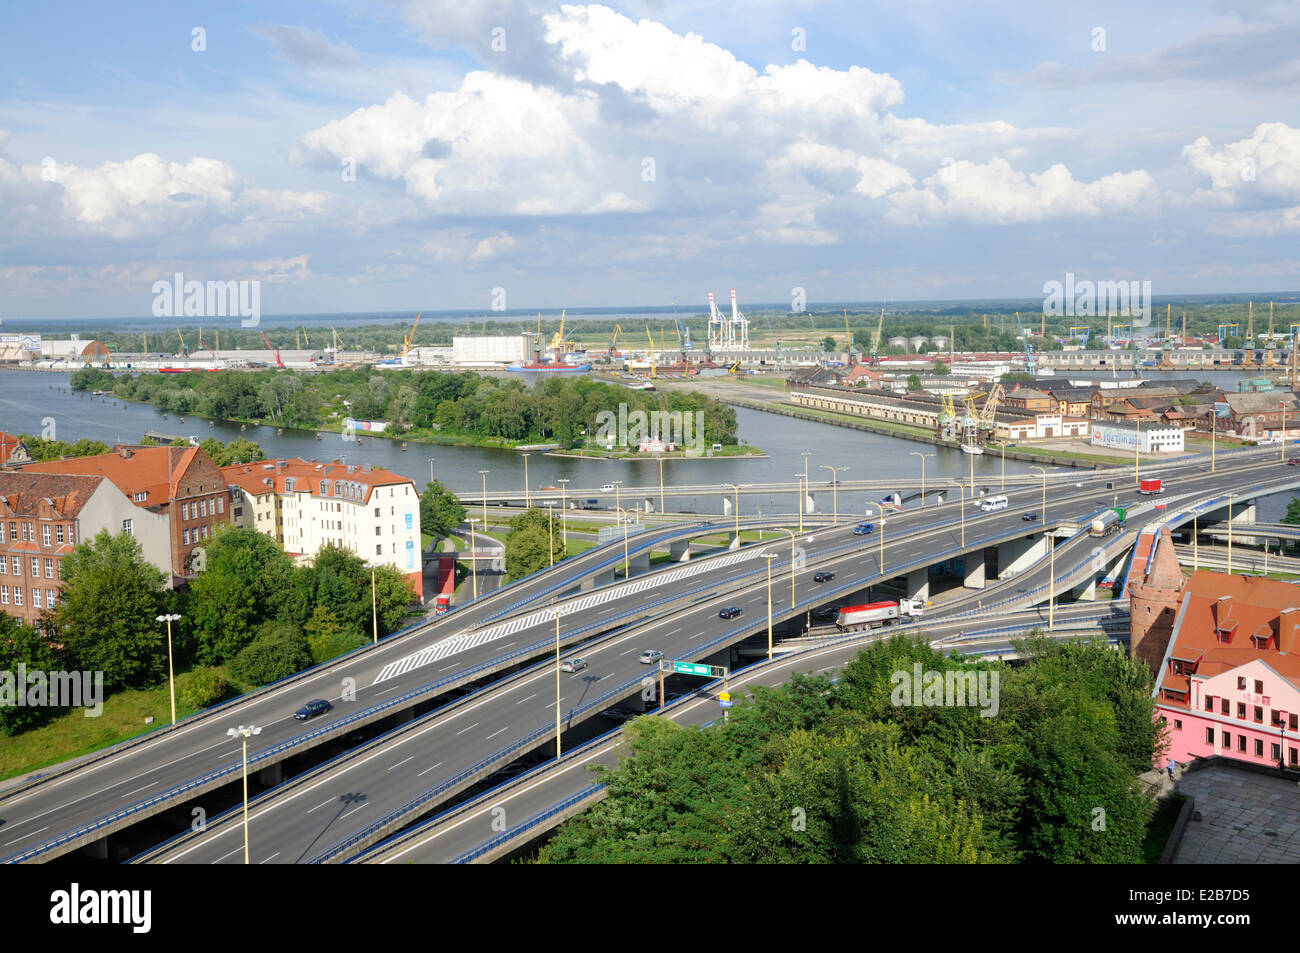 Poland, Western Pomerania, Szczecin, roads along the port - Stock Image